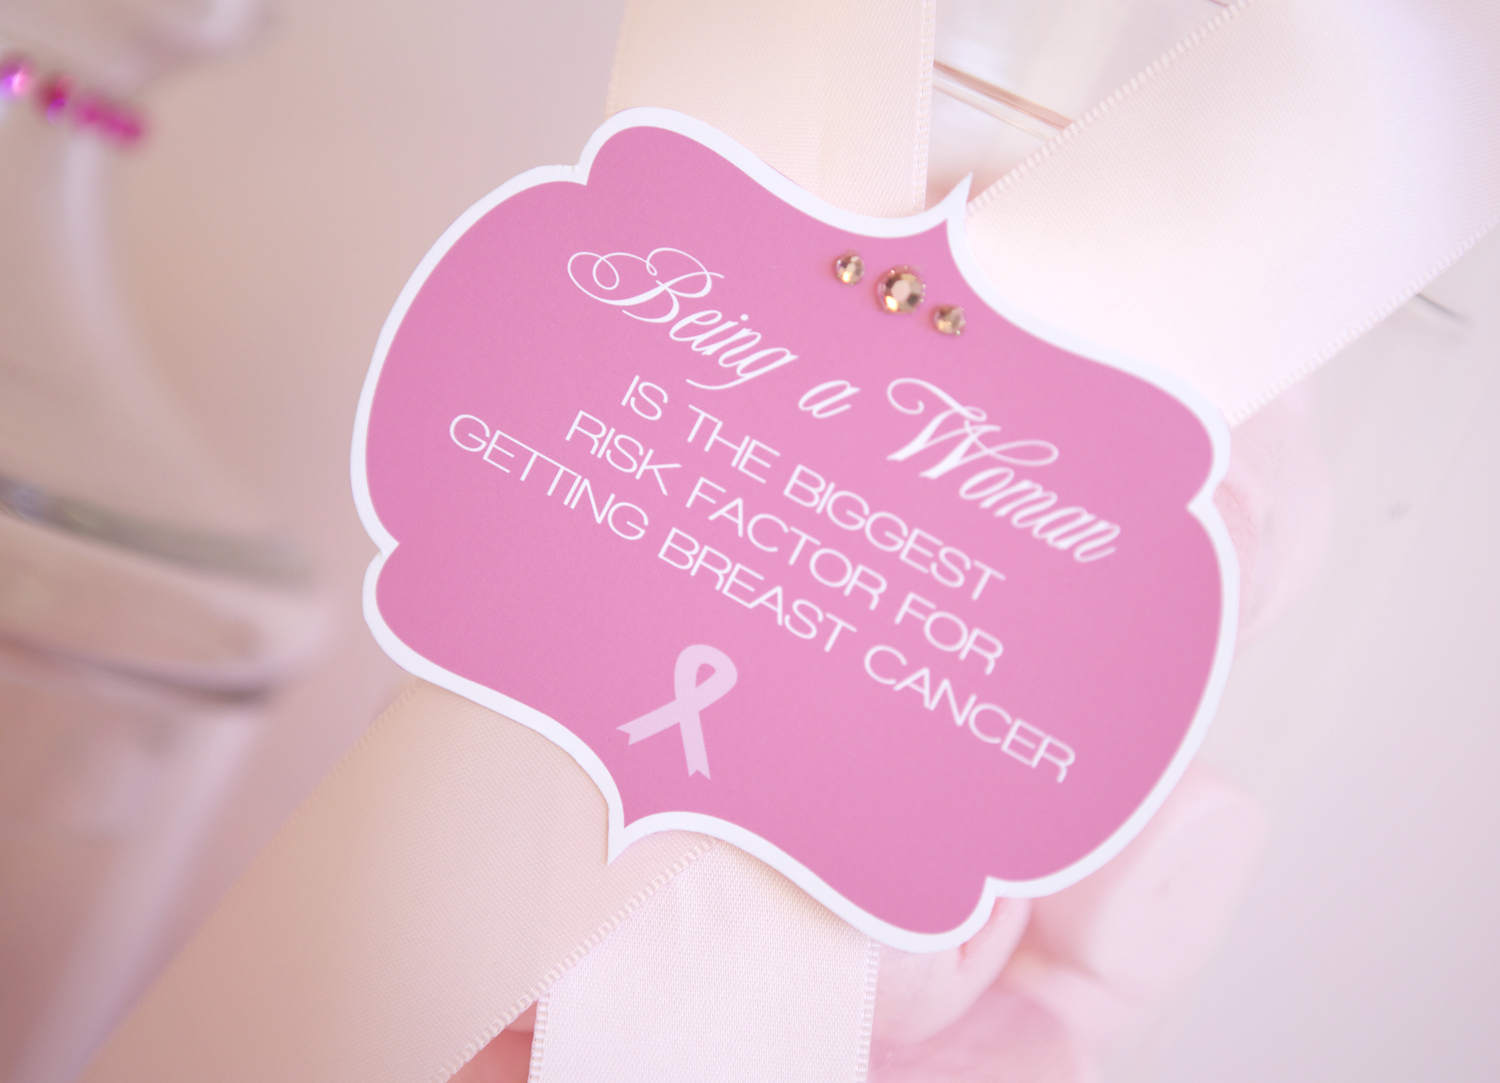 Update on breast cancer